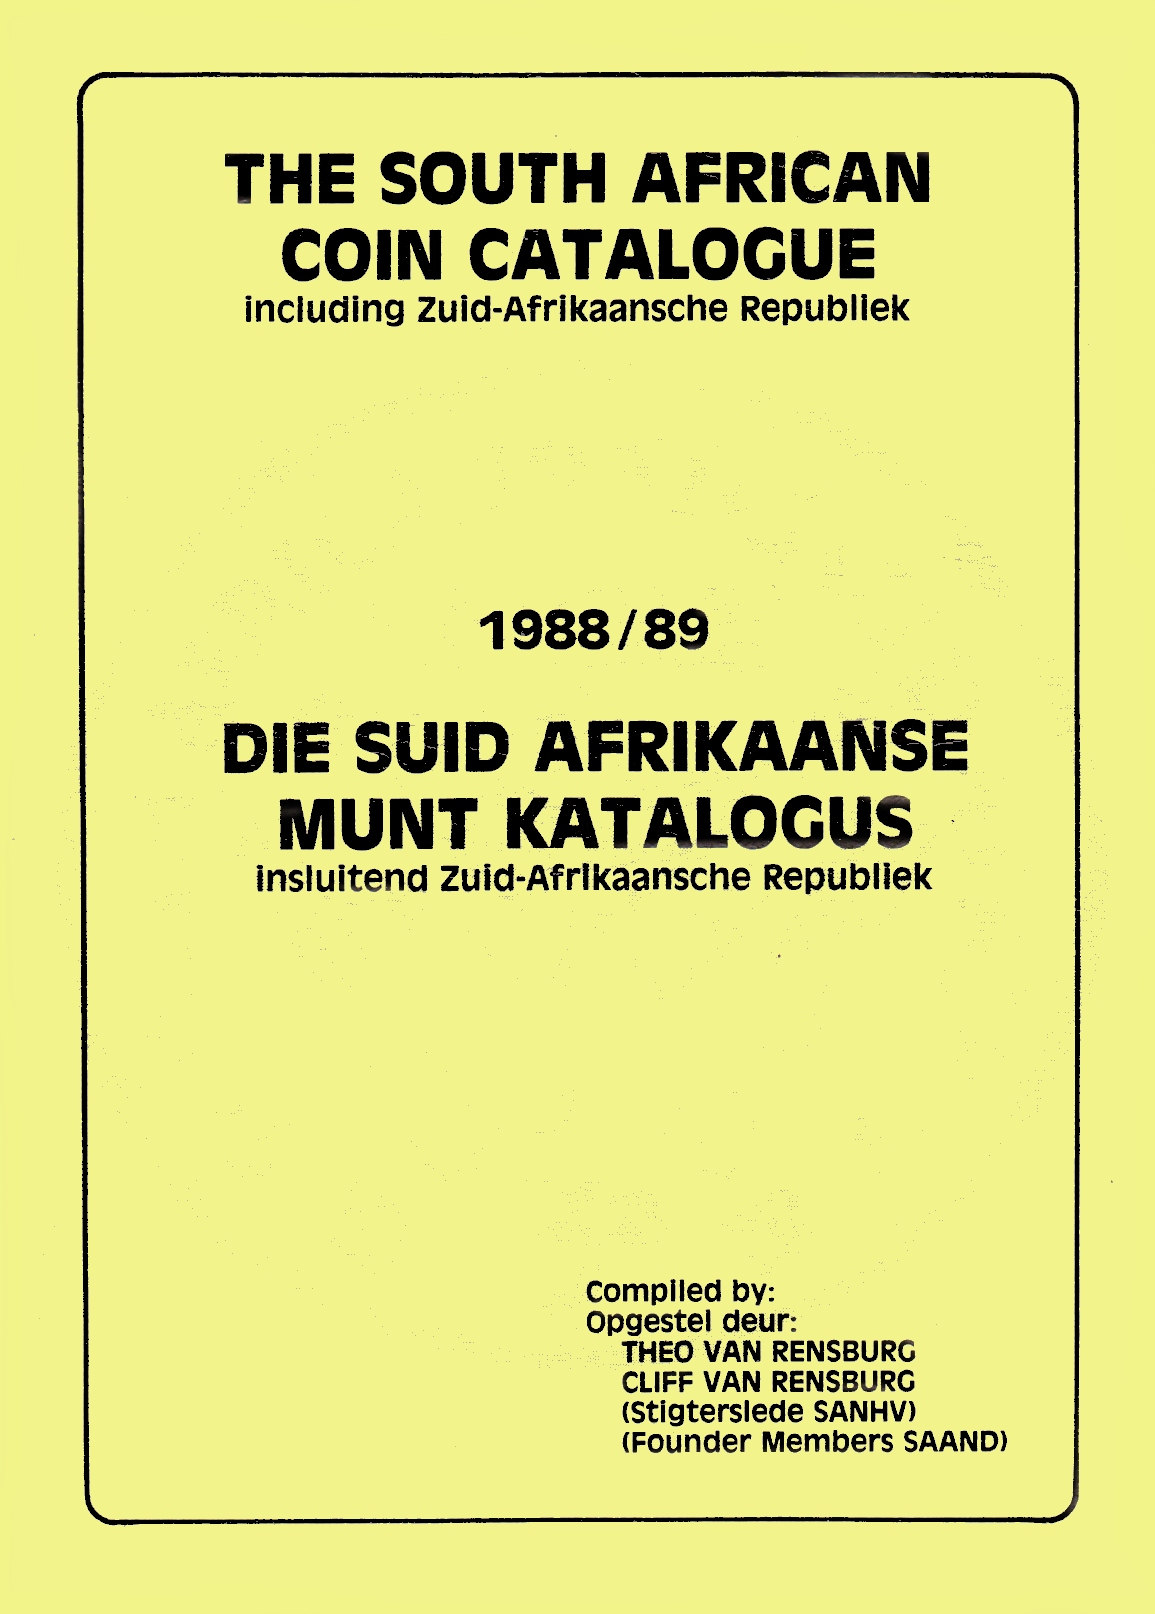 Randburg Coin Catalogue 1988 to 1989